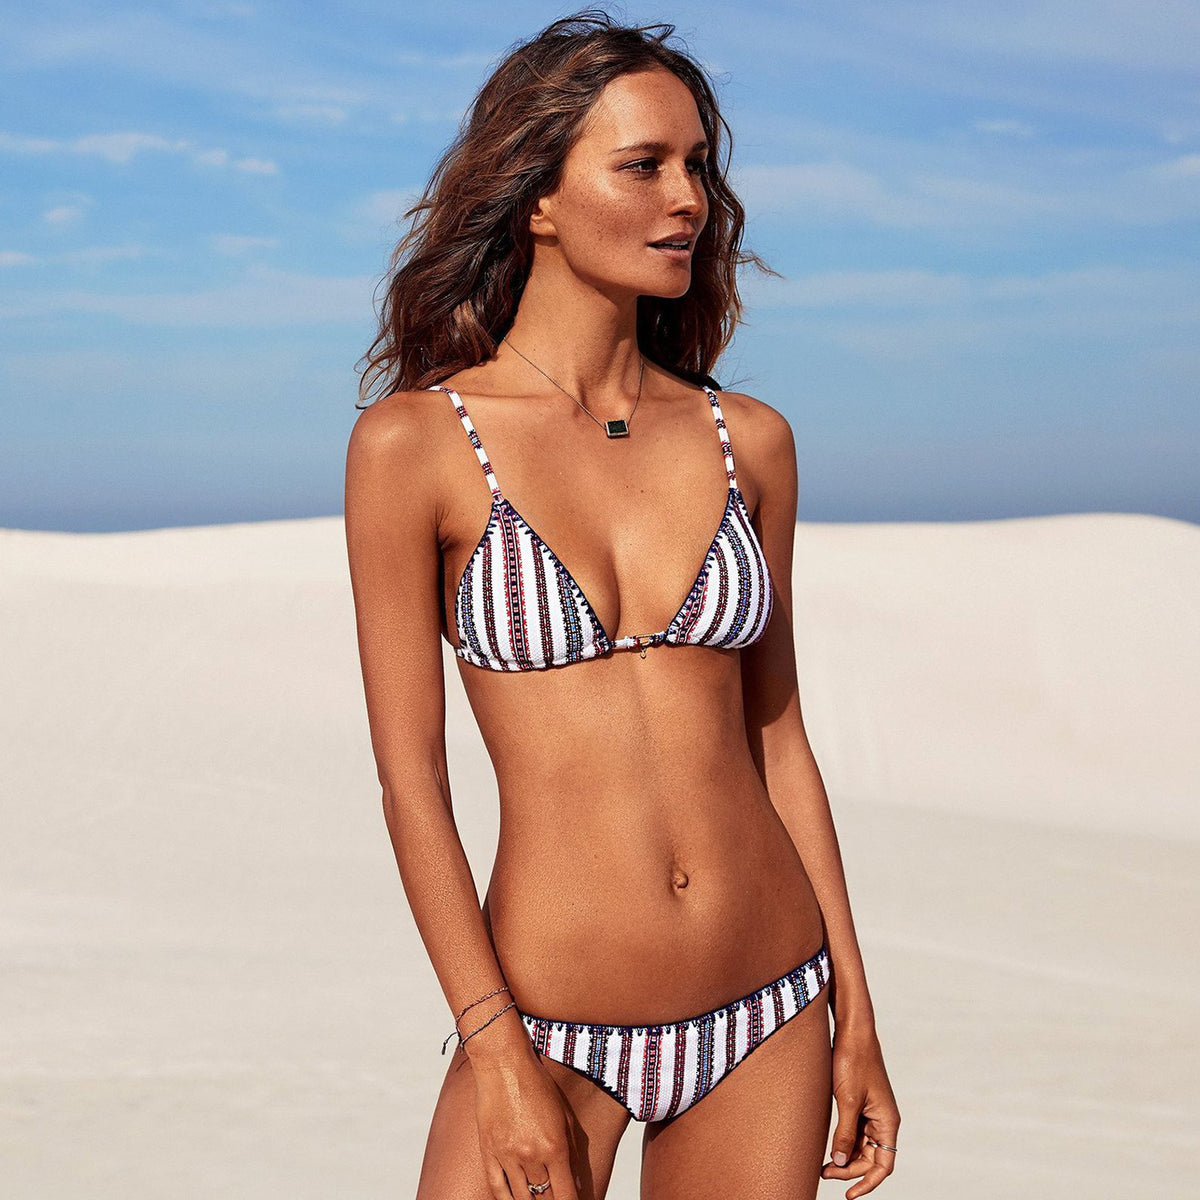 Crochet Trim Stripped Bikini Set - worthtryit.com